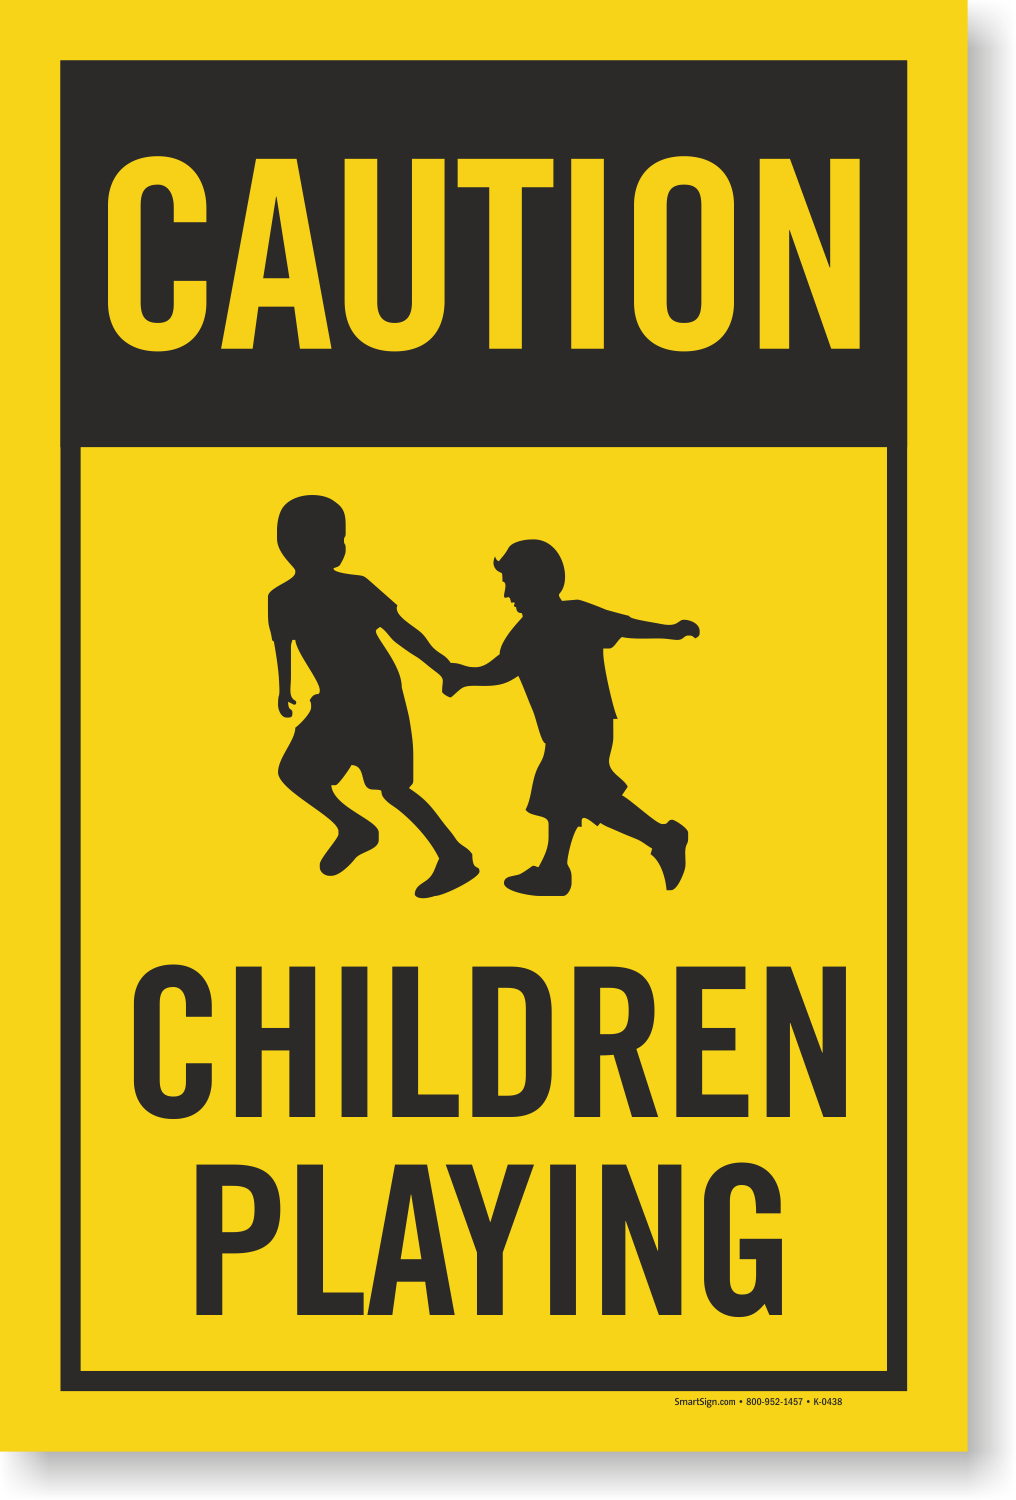 Children Playing Caution Sign Insert For Kit , SKU - K-0438